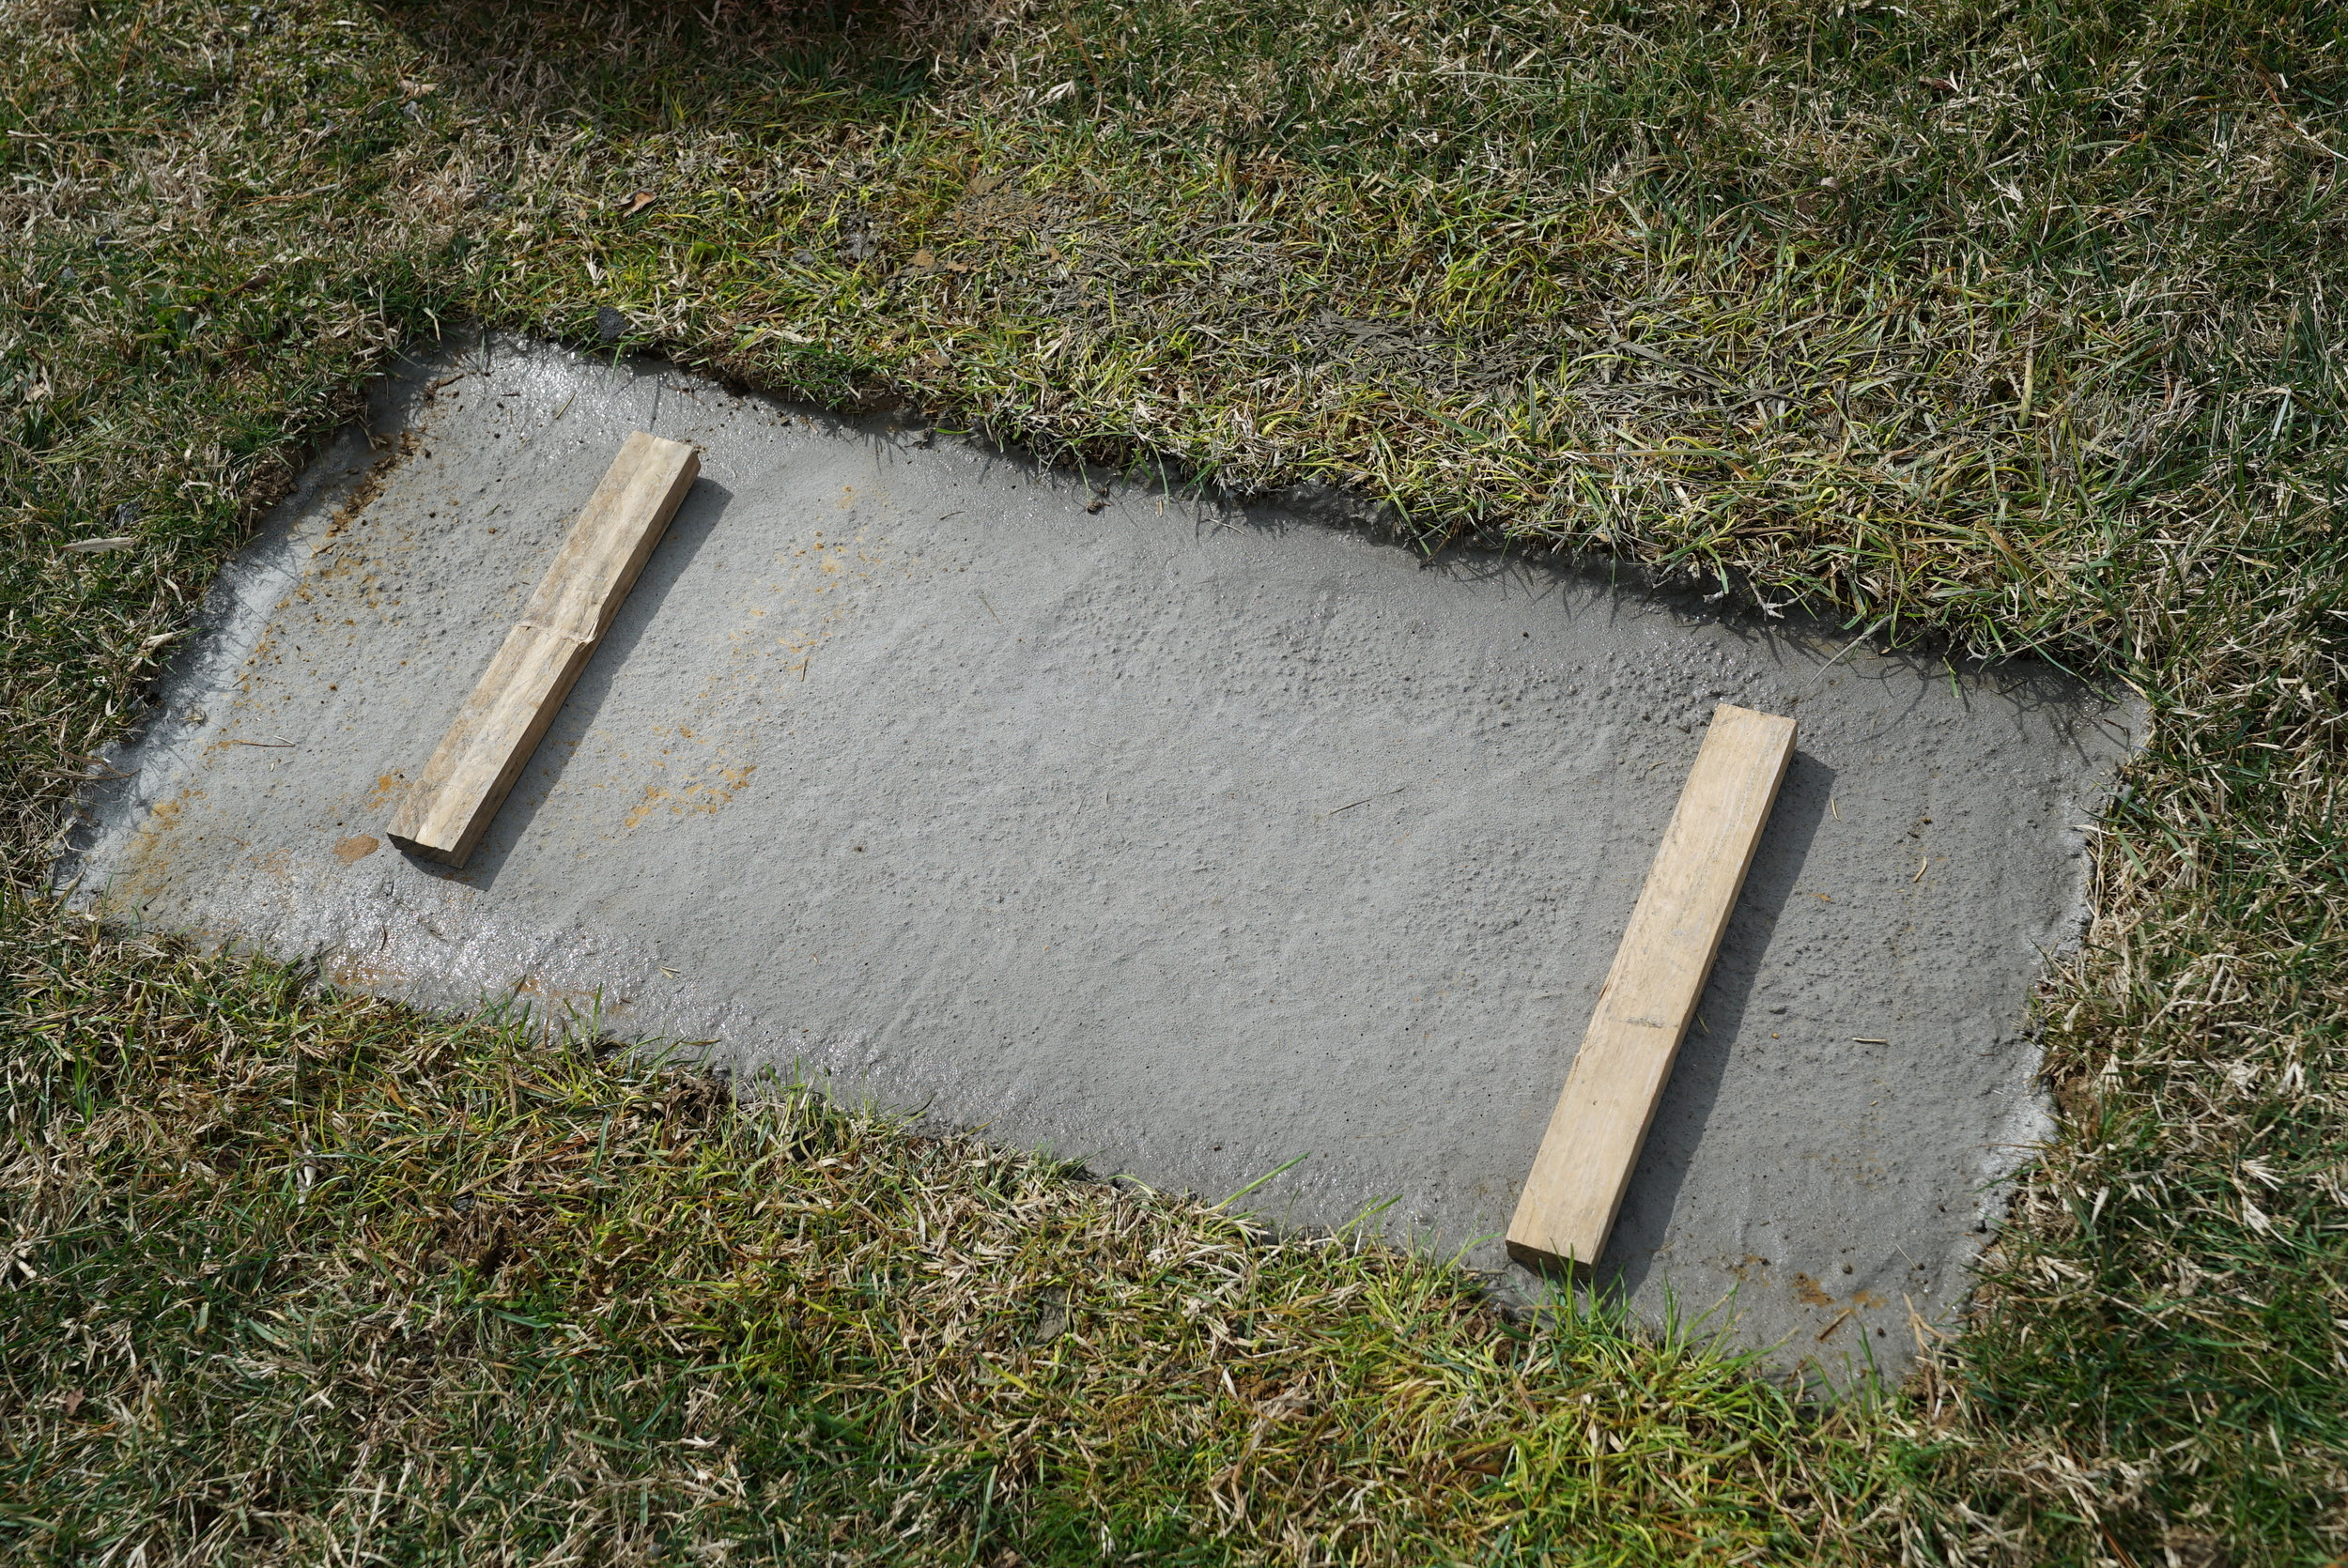 This is what a proper foundation looks like. It is a minimum of 2 feet deep in order to support the stone and prevent leaning of the stone, which can happen over time. The bigger the stone, the deeper the concrete.